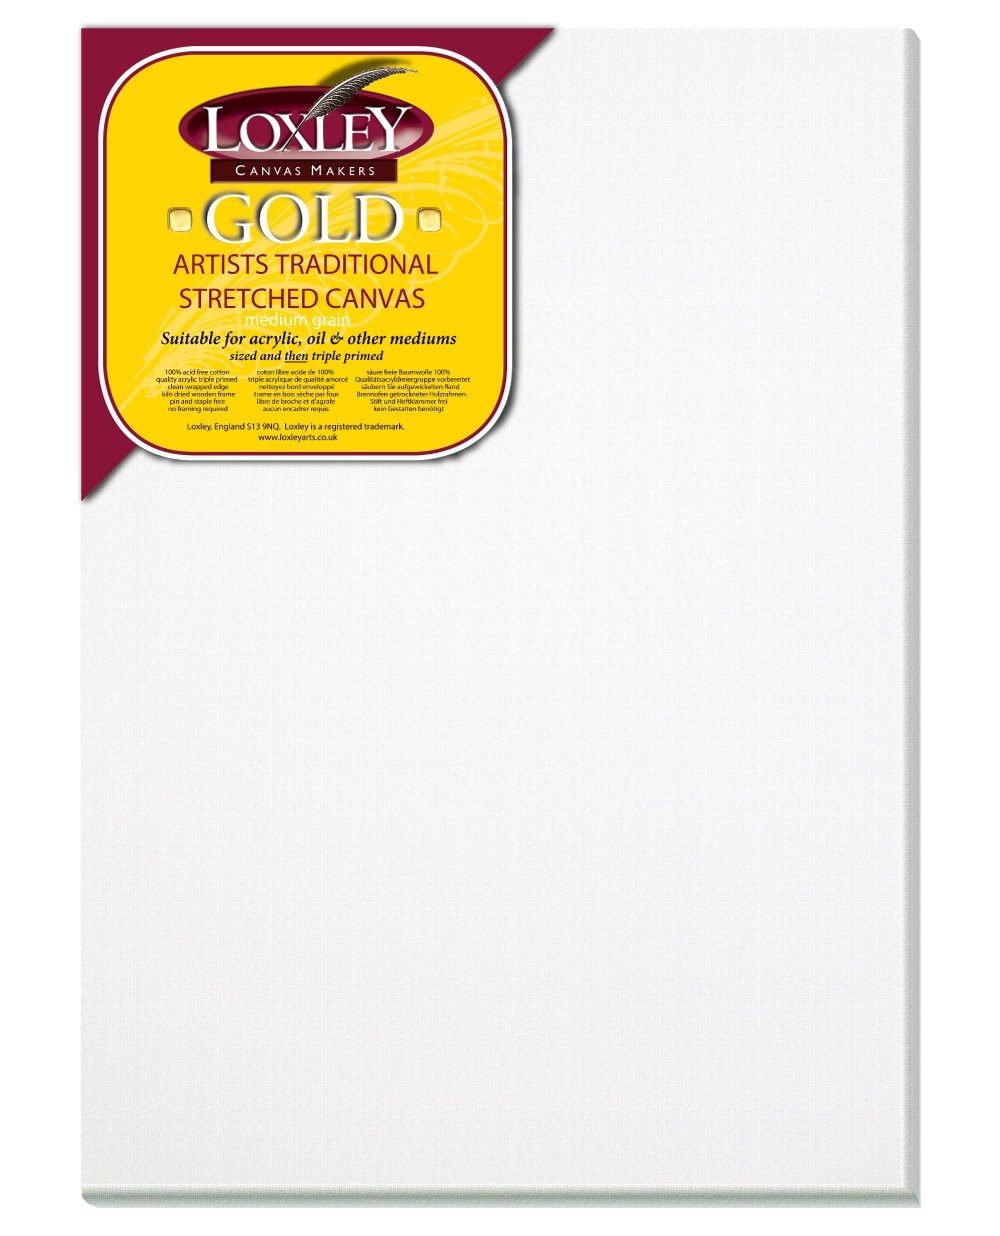 Loxley Gold 14 x 10-inch 35 x 25 cm 18 mm Traditional Depth Stretched Artist Canvas Primed LCM-1410